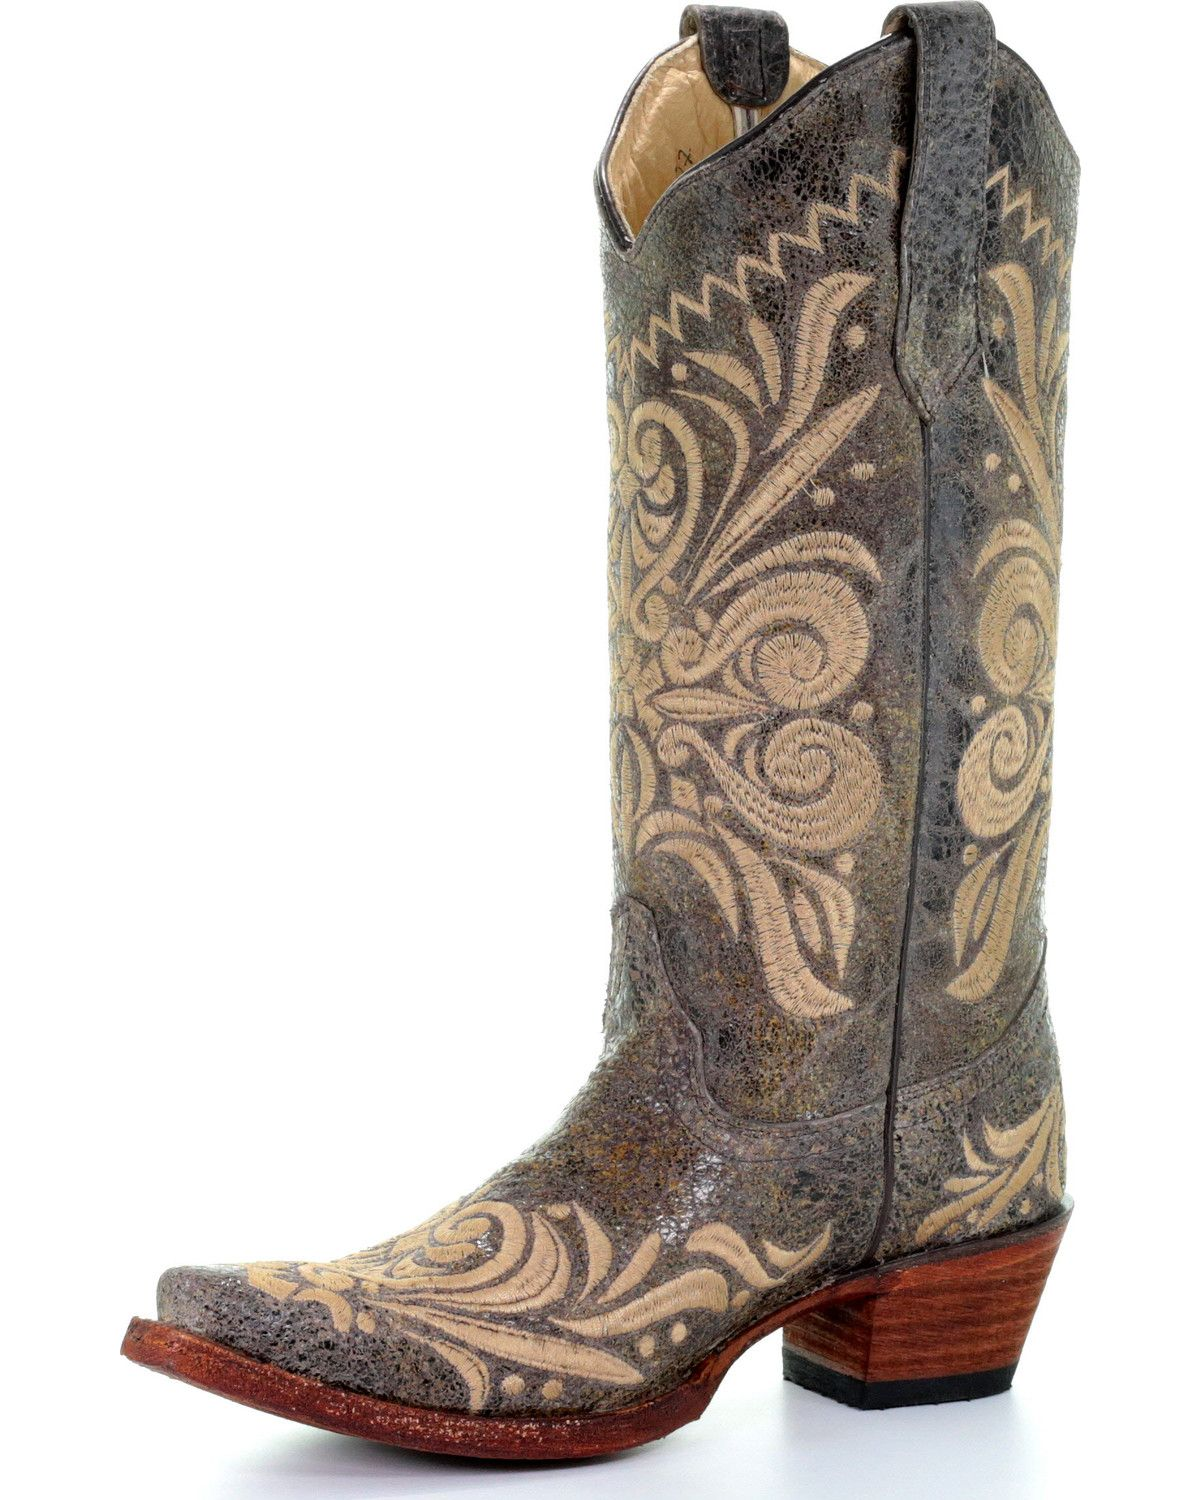 de1bd74a36b Circle G Women's Distressed Filigree Embroidered Cowgirl Boots ...